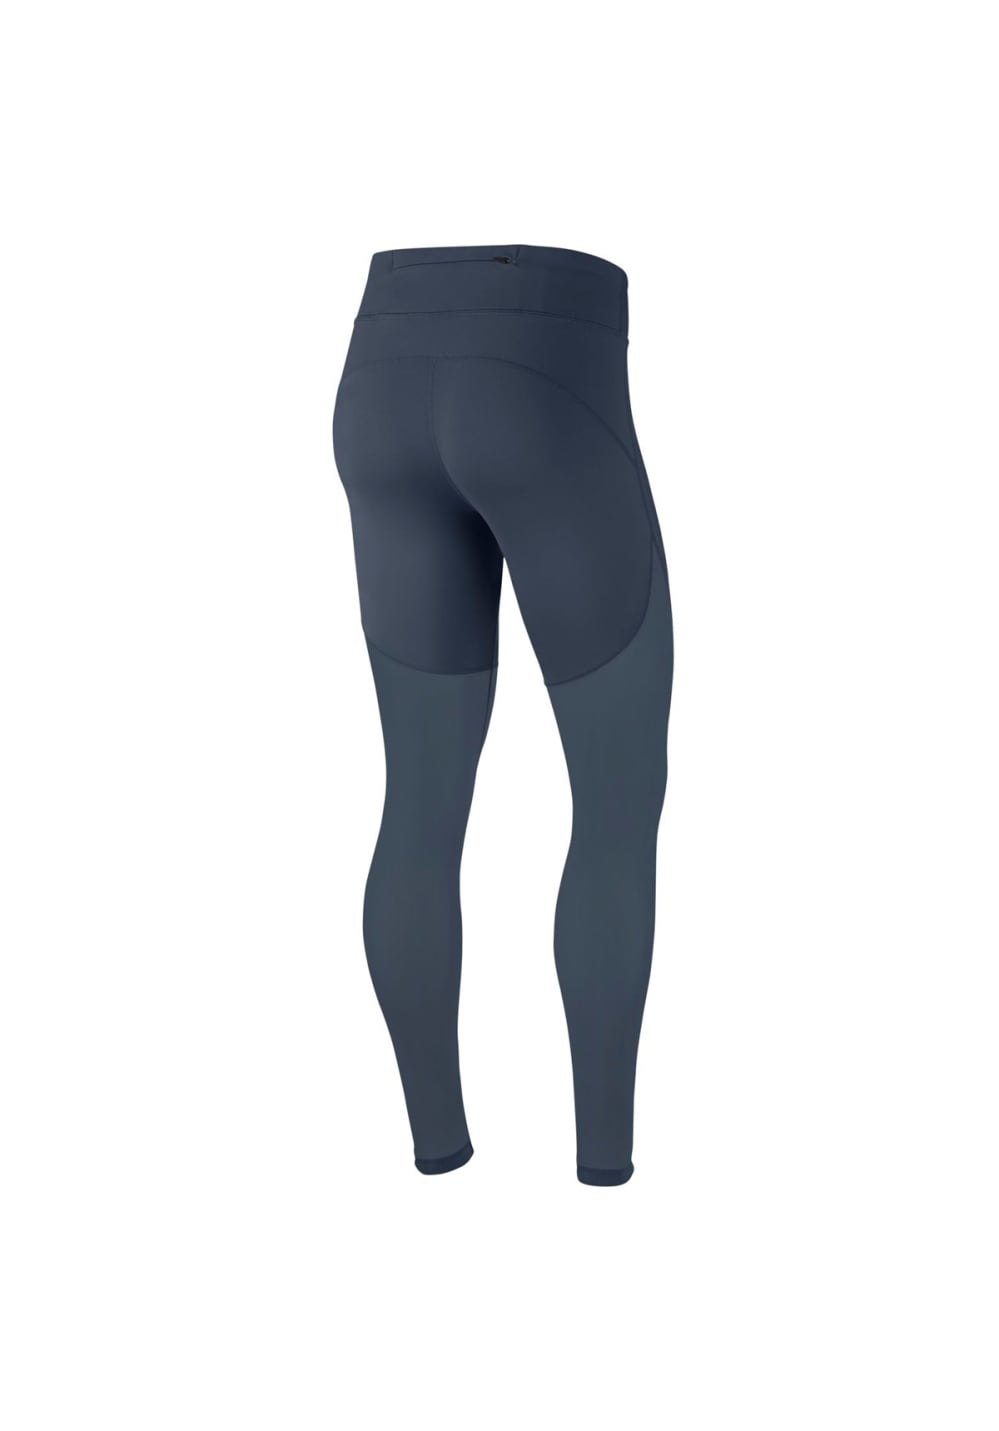 separation shoes 42ee7 4cda3 nike-power-epic-lux-running-tights-pantalons-course-femme-bleu -pid-000000000010125169.jpg